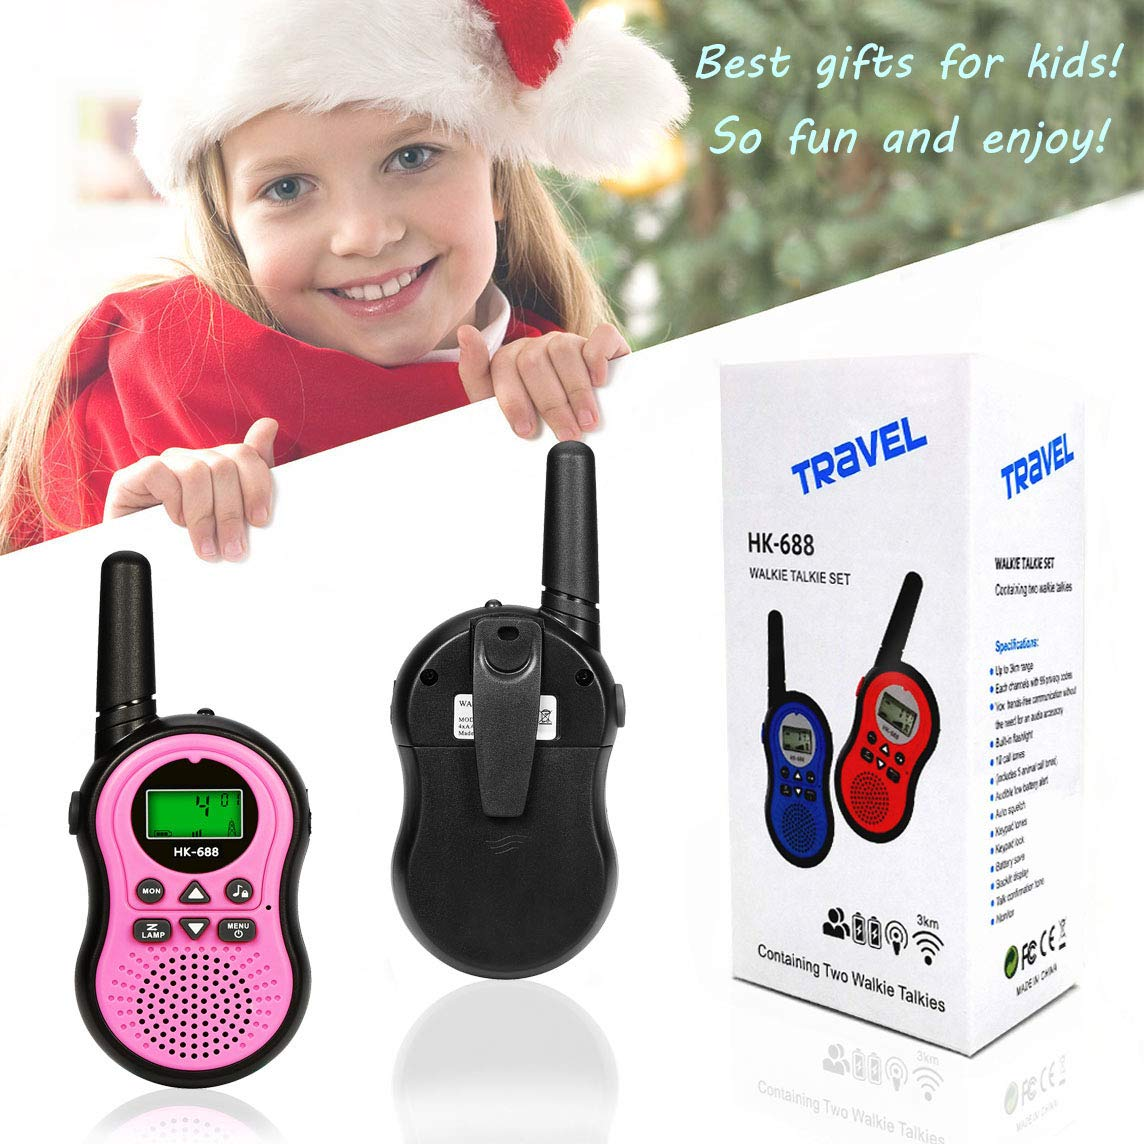 Toys for 3-12 Year Old Boys, BIBOYELF Walkie Talkies for Kids Toys for 3-12 Year Old Girls,5-9 Year Old Girl Birthday Gift,Outside Toys for Kids Outdoor Play,HK-688 1Pair(Pink) by BIBOYELF (Image #7)